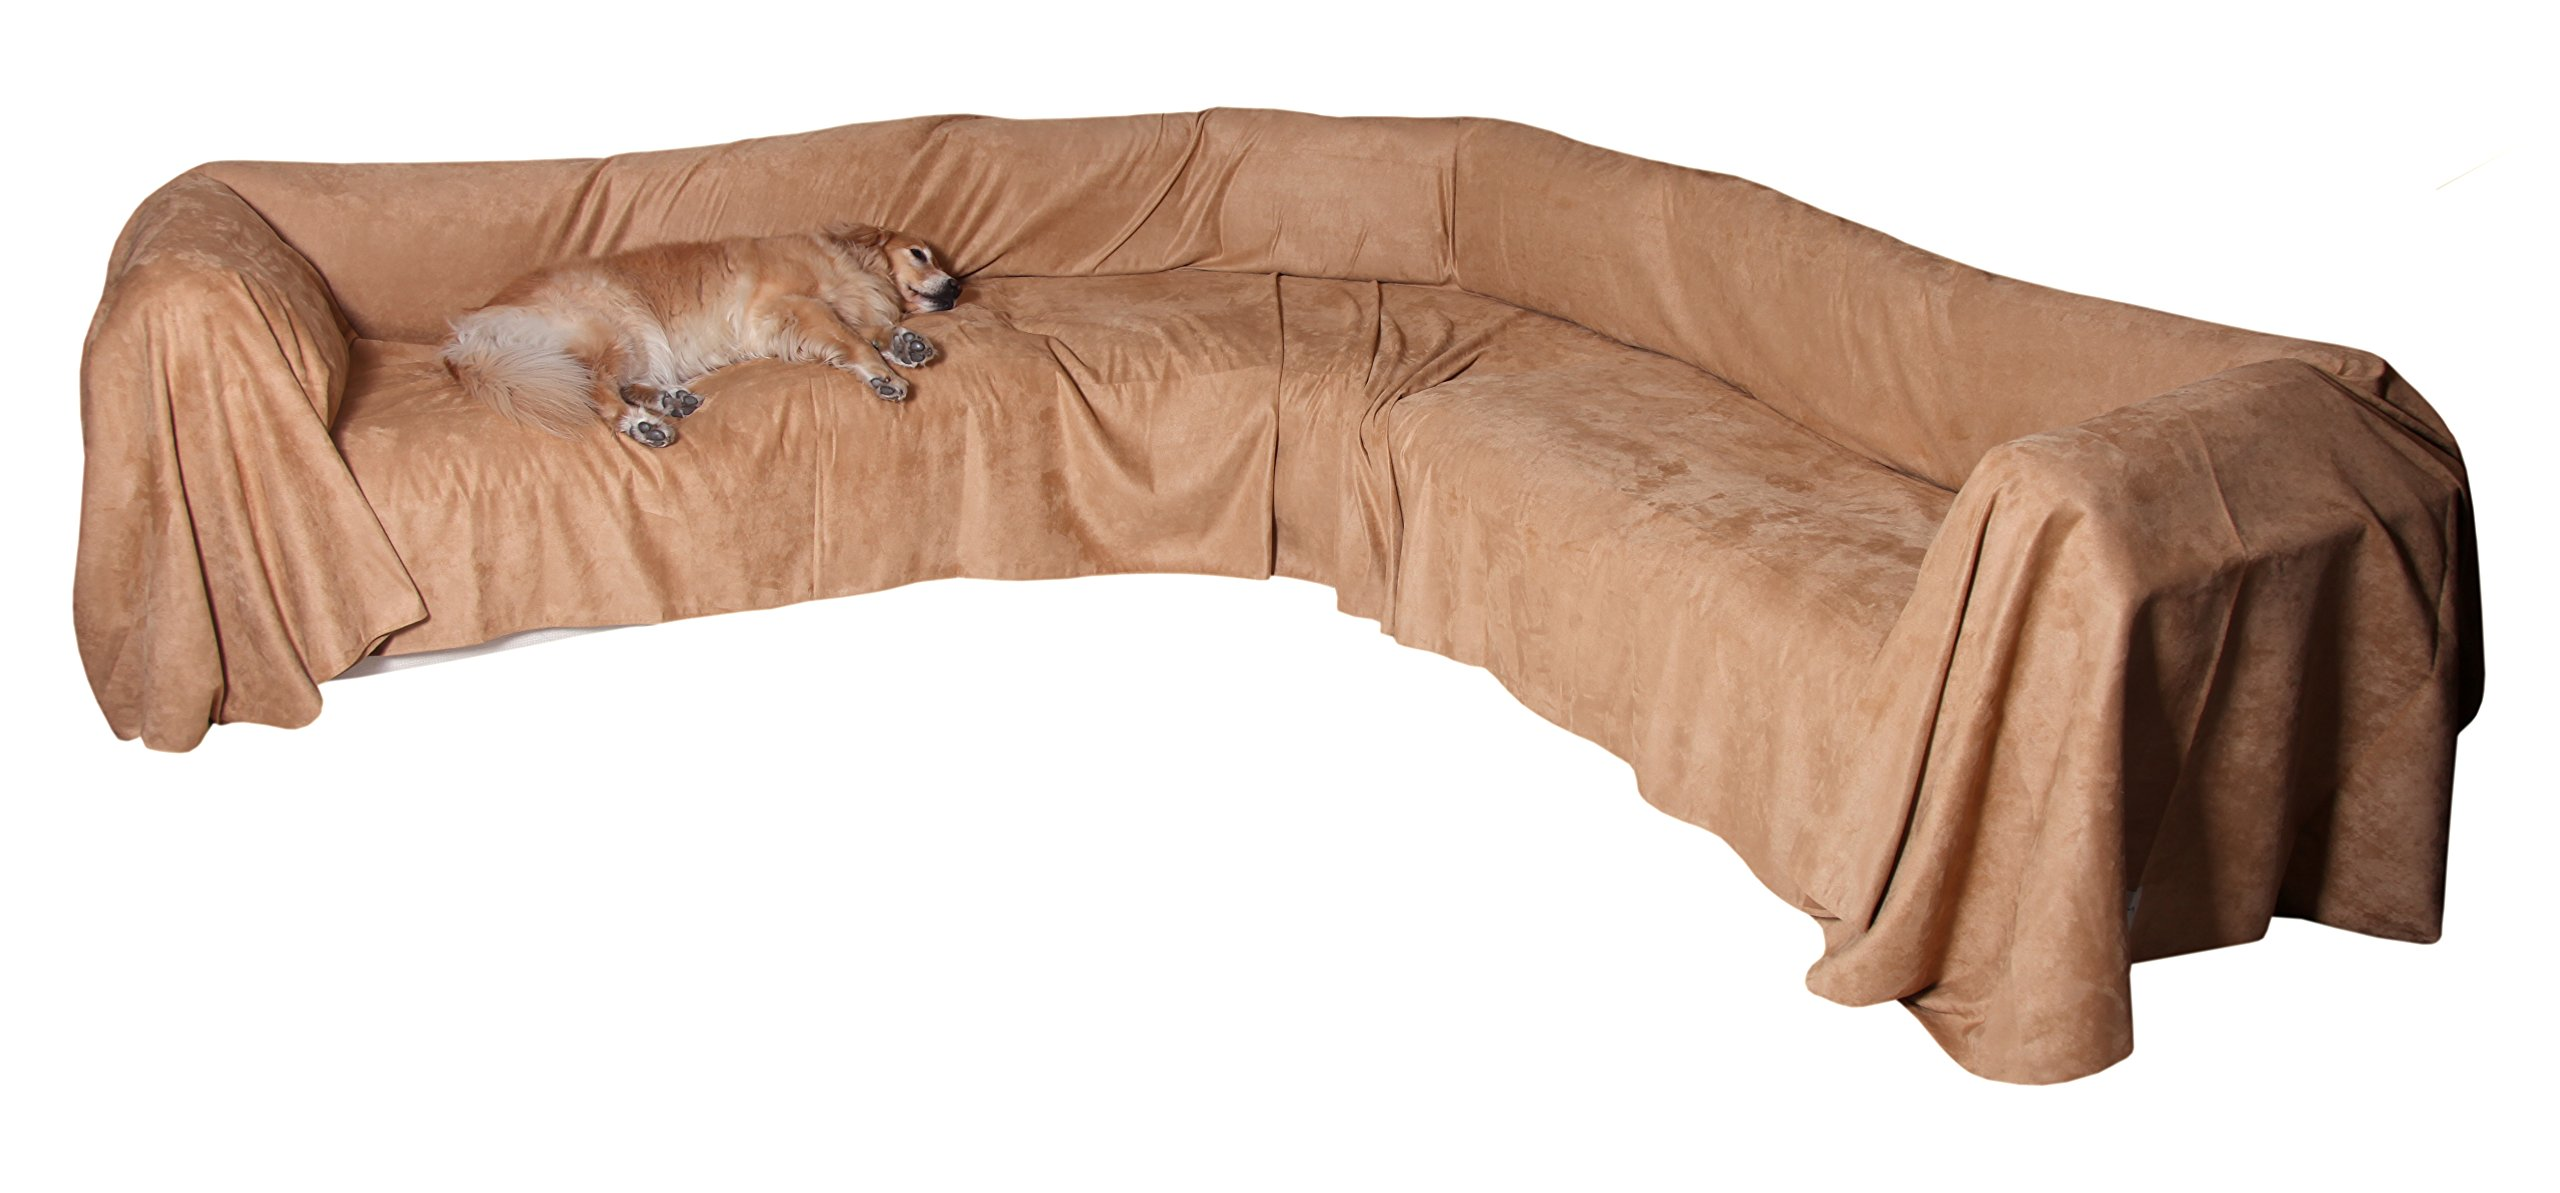 """Floppy Ears Design Simple Faux Suede Microfiber Sectional Couch Cover Protector, Tan, Large, 70"""" W x 250"""" L"""